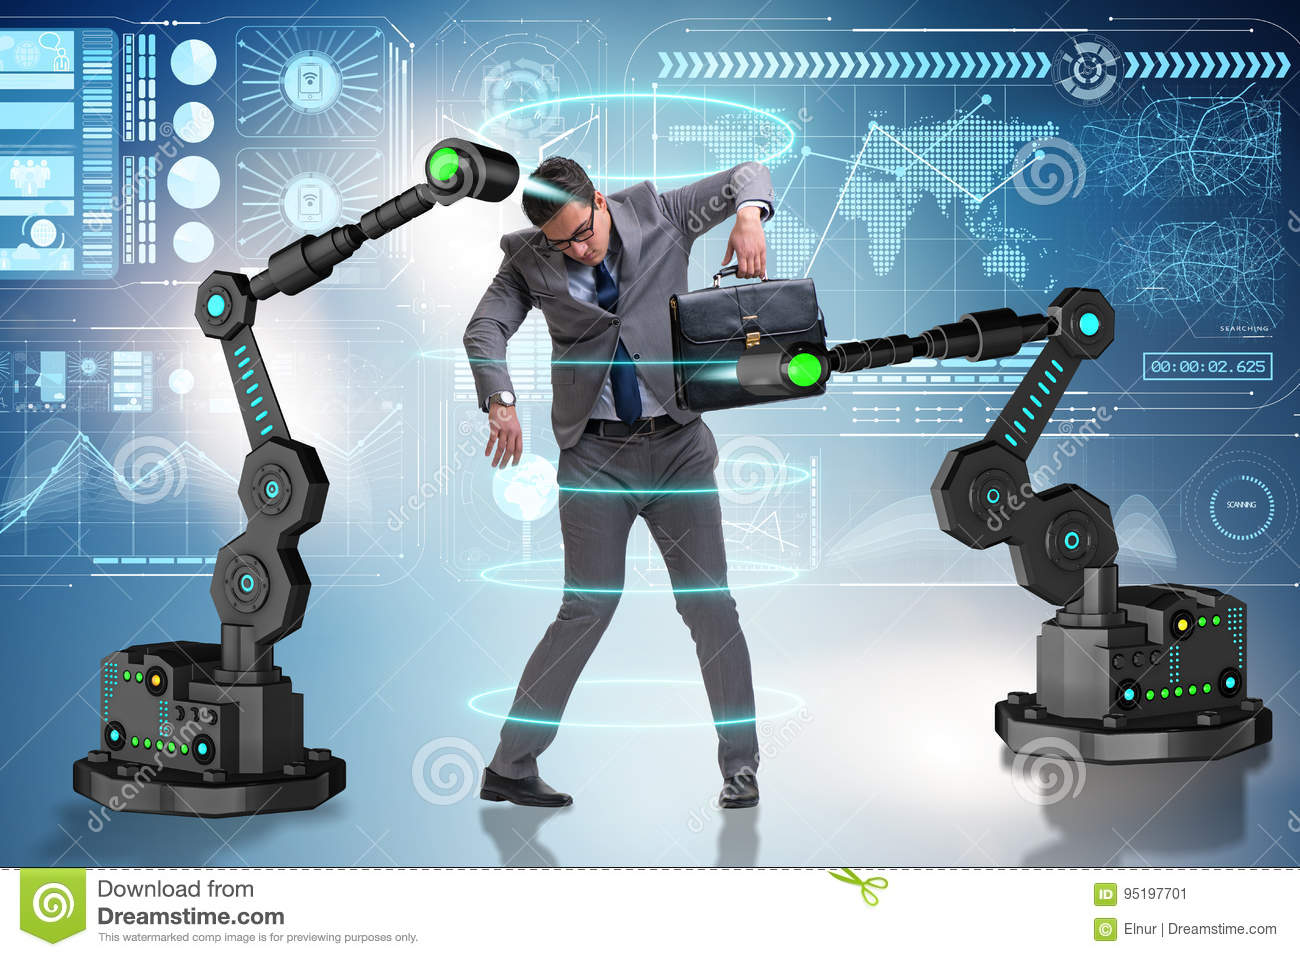 The businessman being manipulated by robotic arms